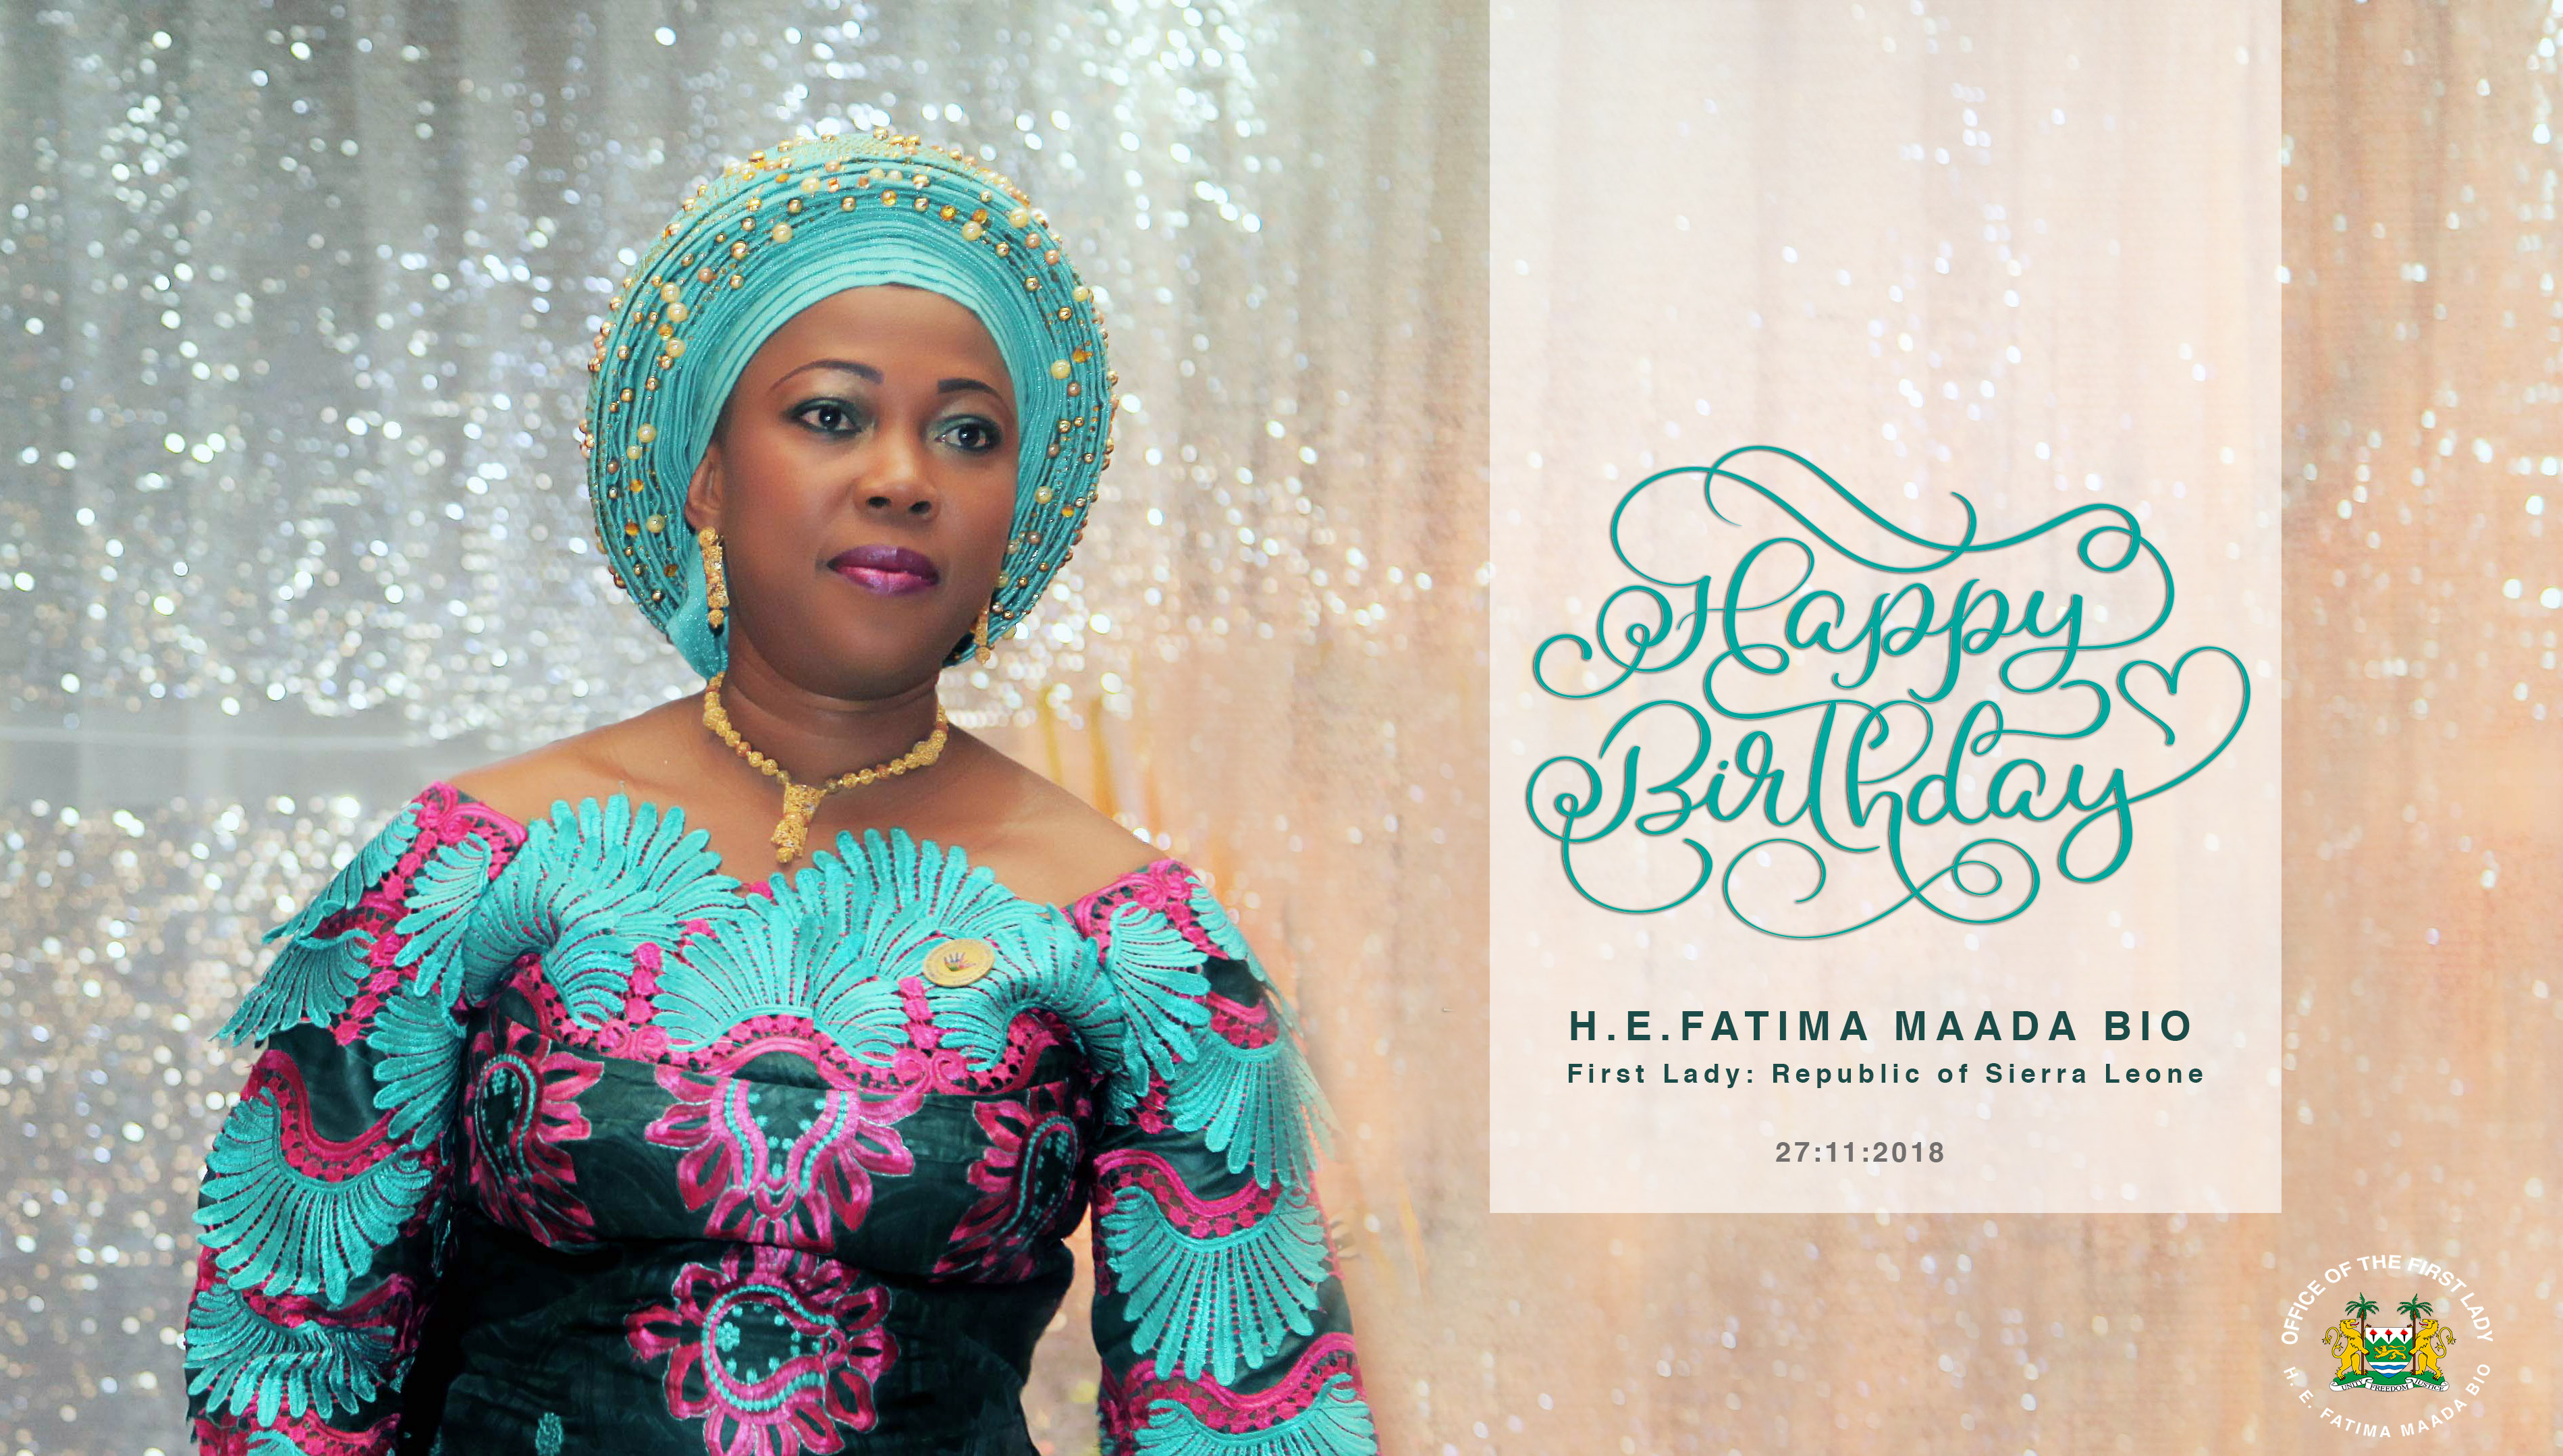 Happy Birthday H. E. Fatima Maada Bio